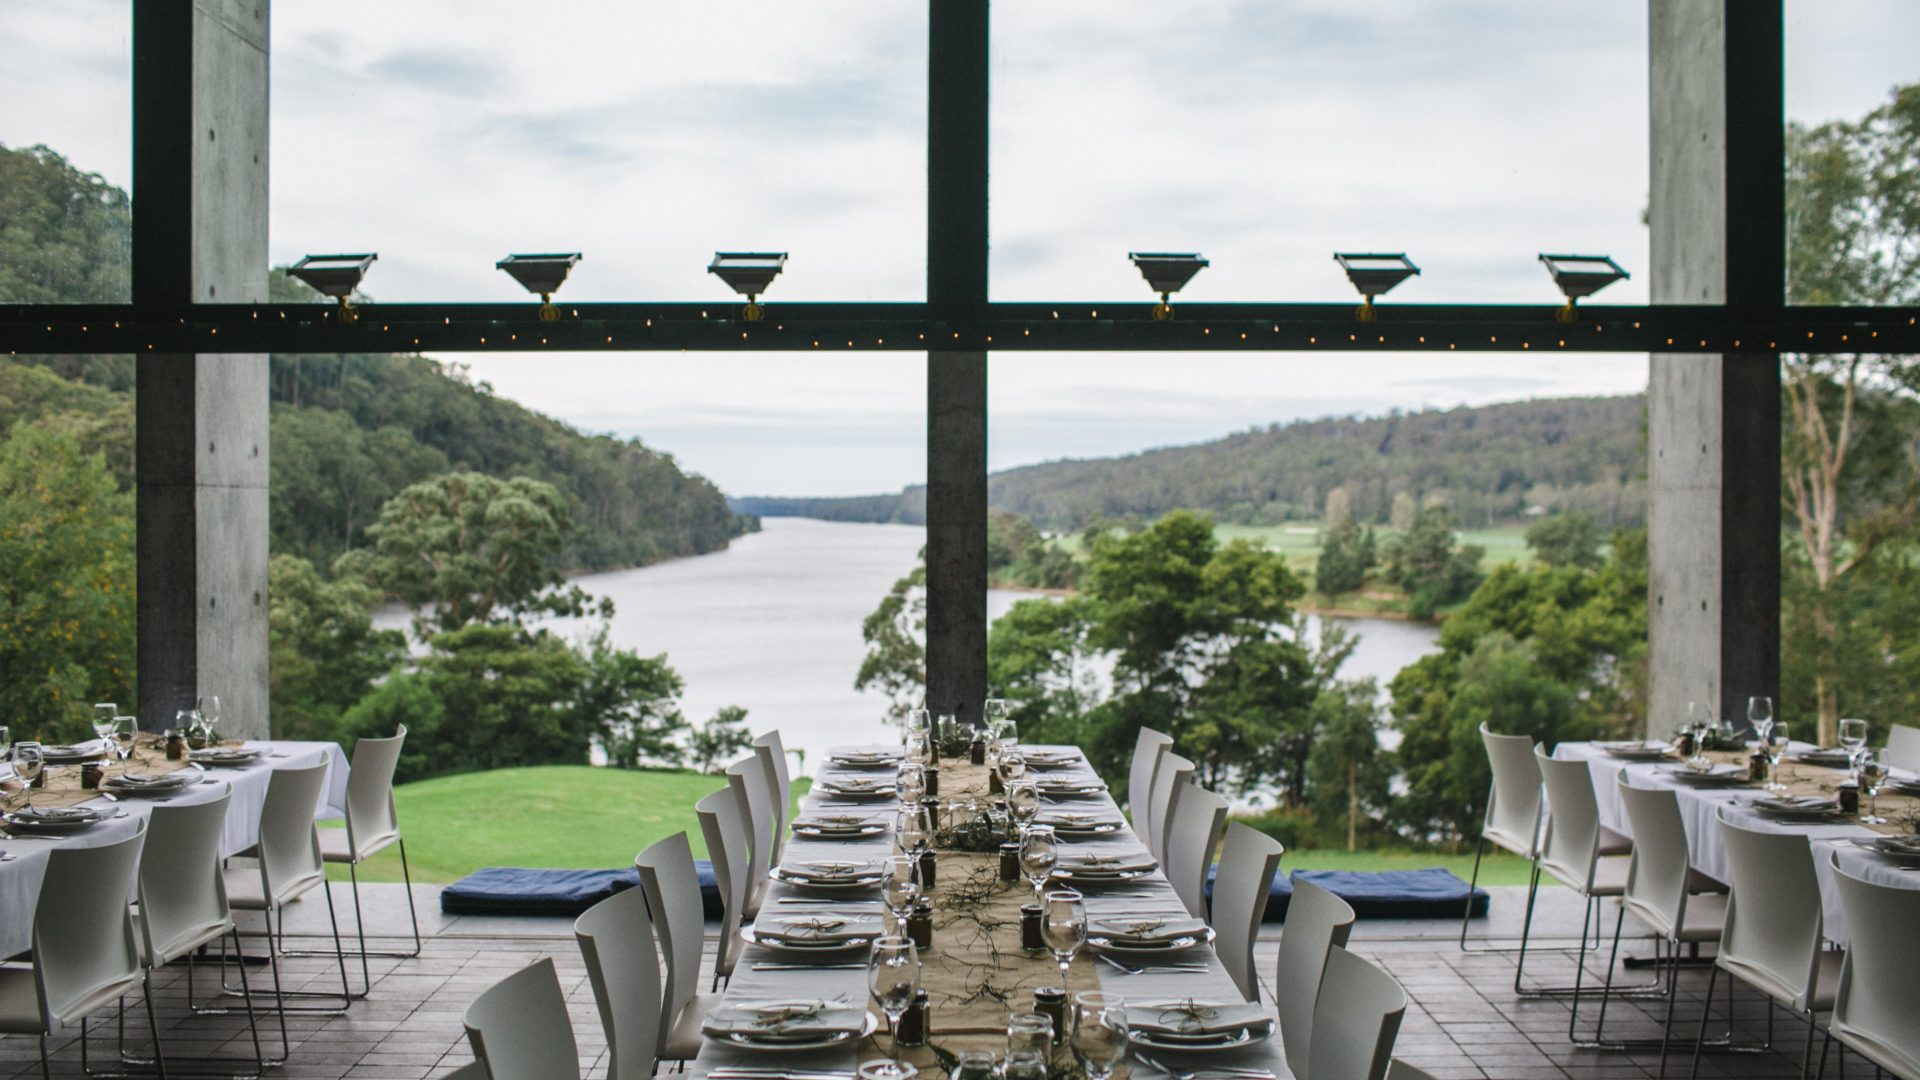 Rows of set dining tables in a room with a large window overlooking a river and mountains.